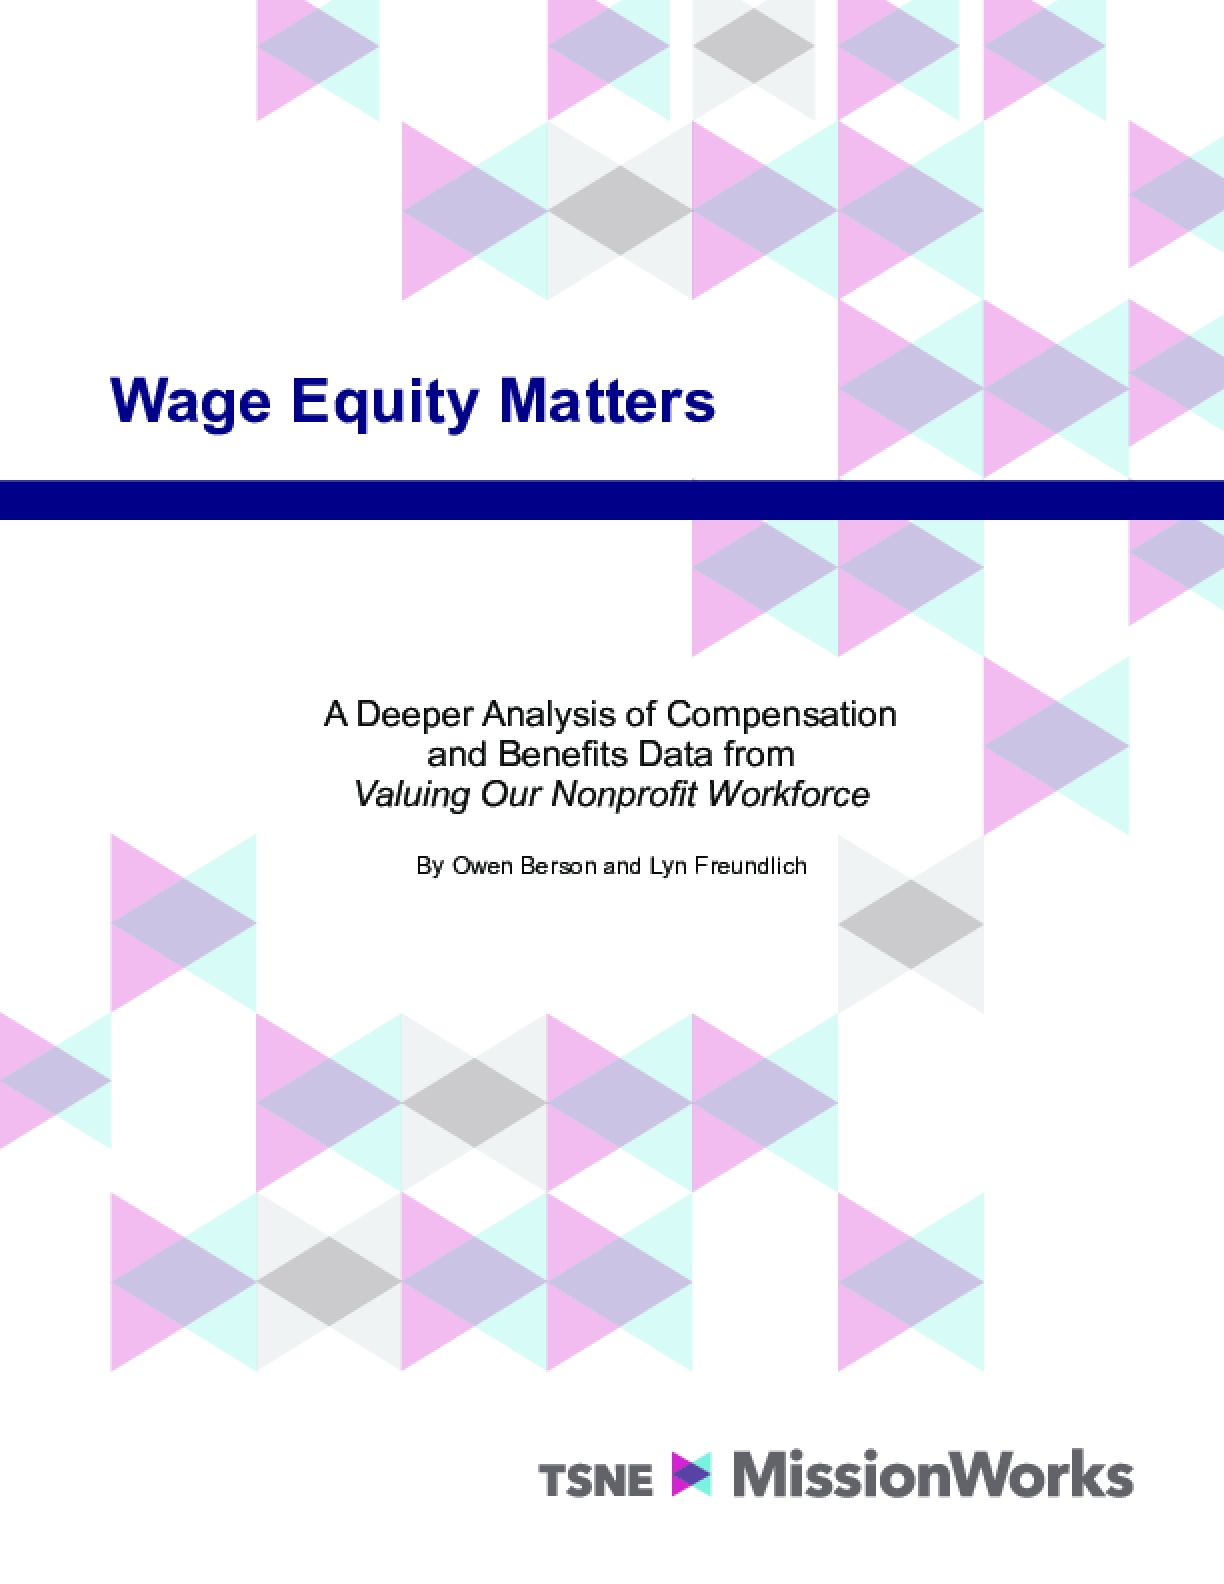 Wage Equity Matters: A Deeper Analysis of Compensation and Benefits Data from Valuing Our Nonprofit Workforce